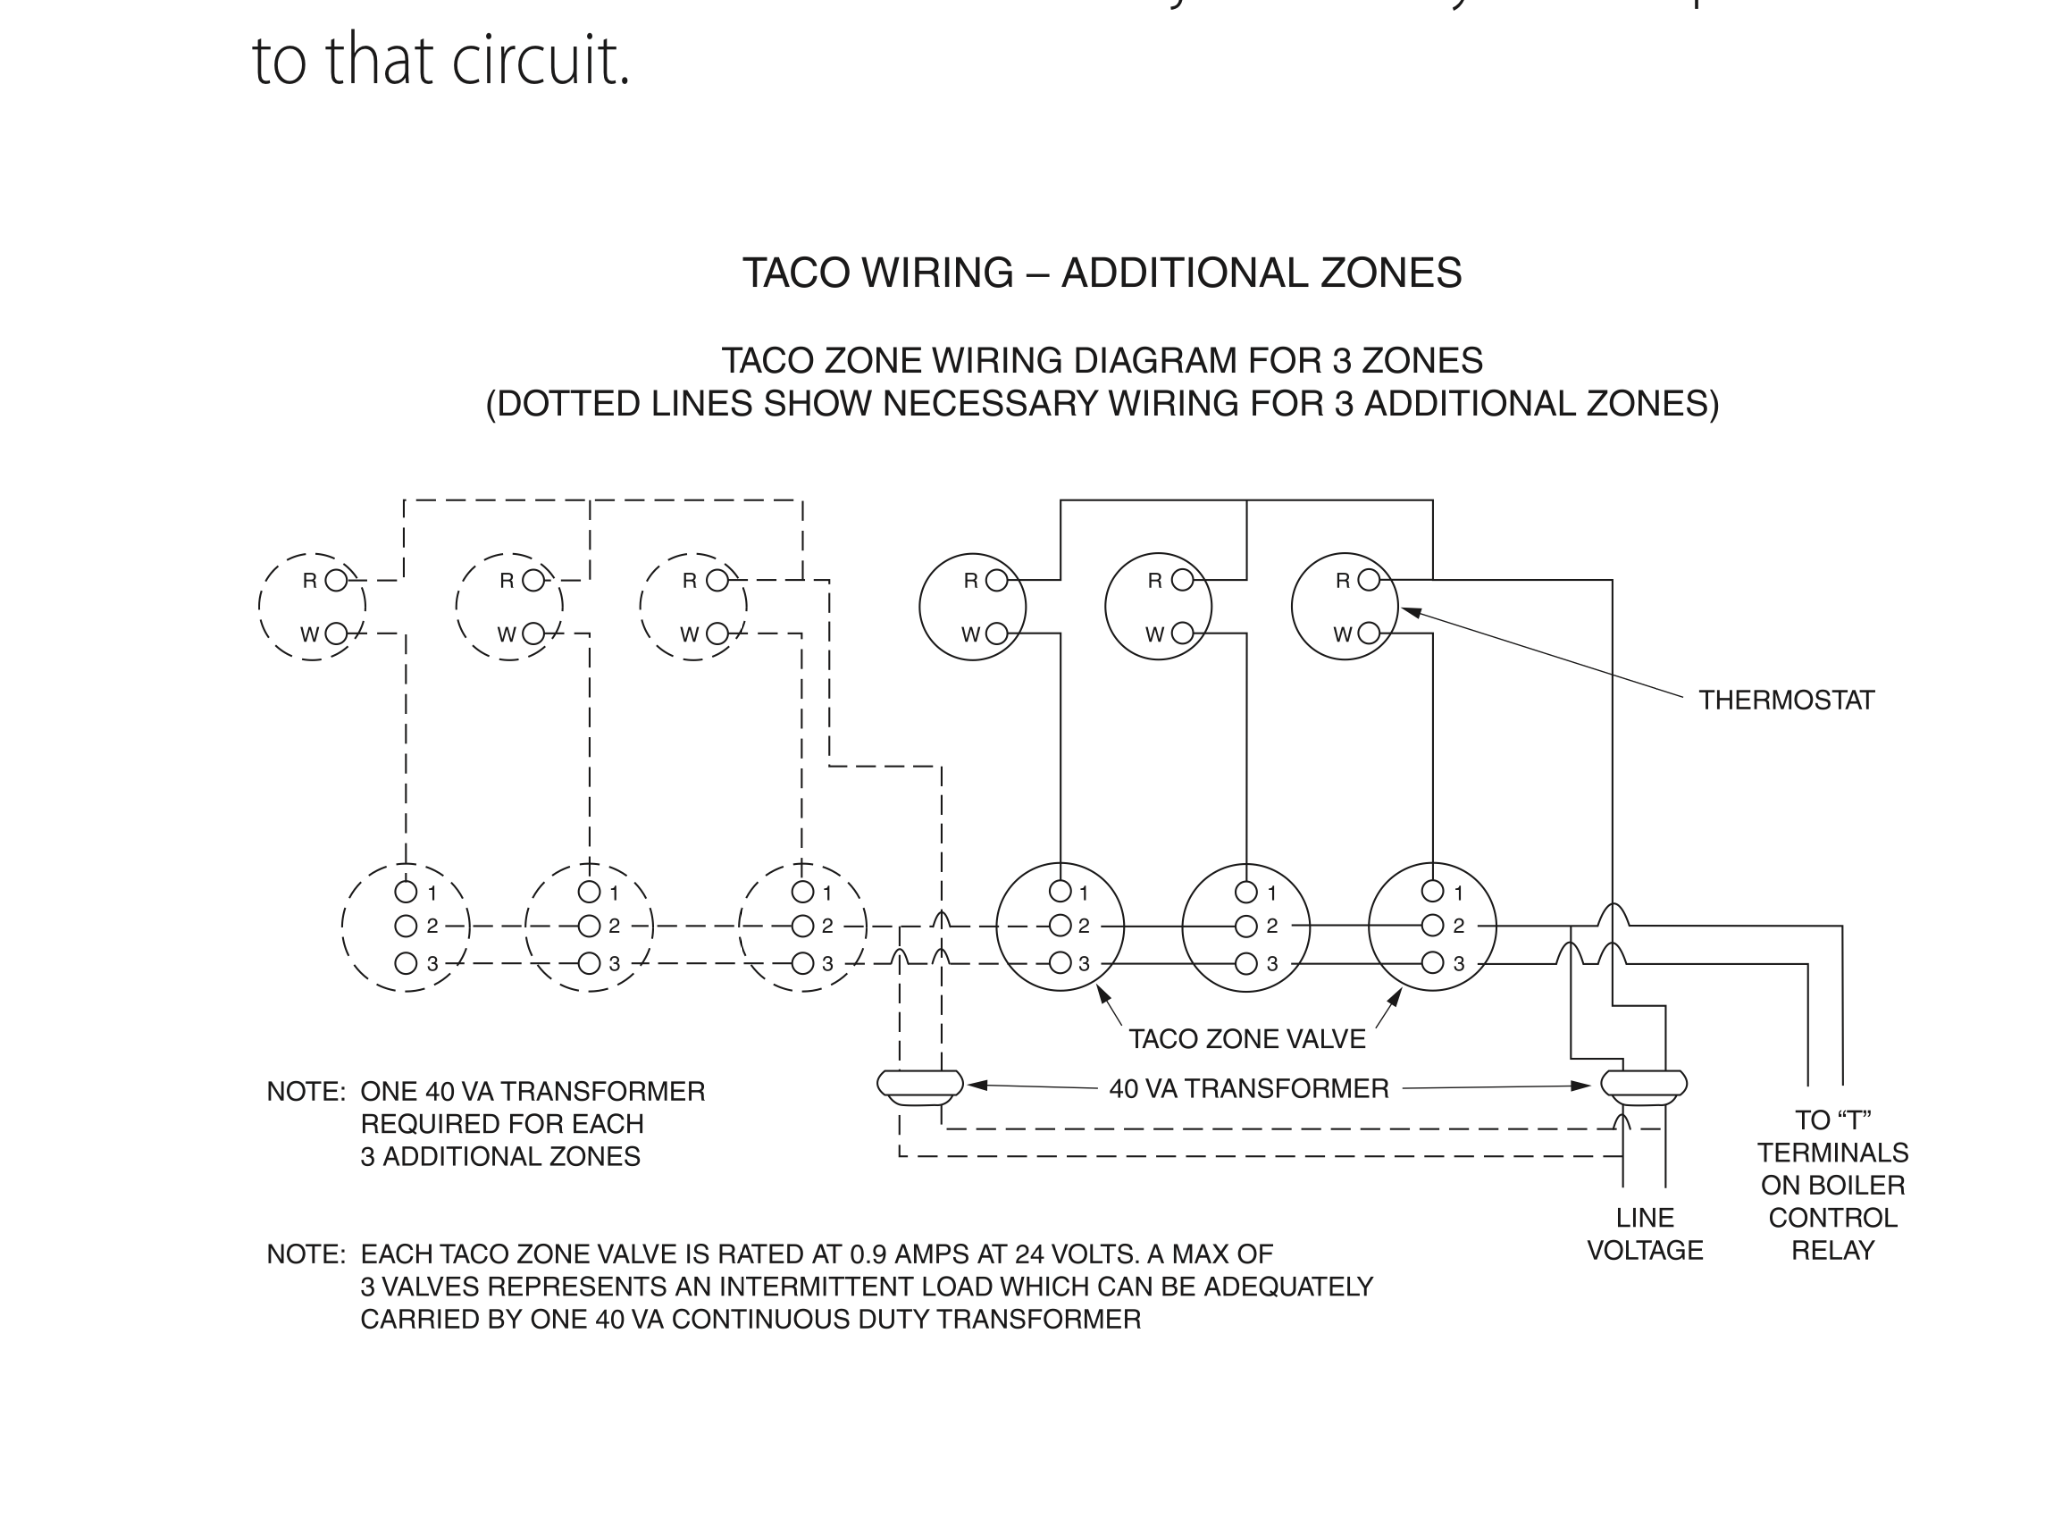 taco valve wiring diagram multiple taco zone valve wiring diagram multiple taco zone valve 2 thermostat 2 zone valve wiring